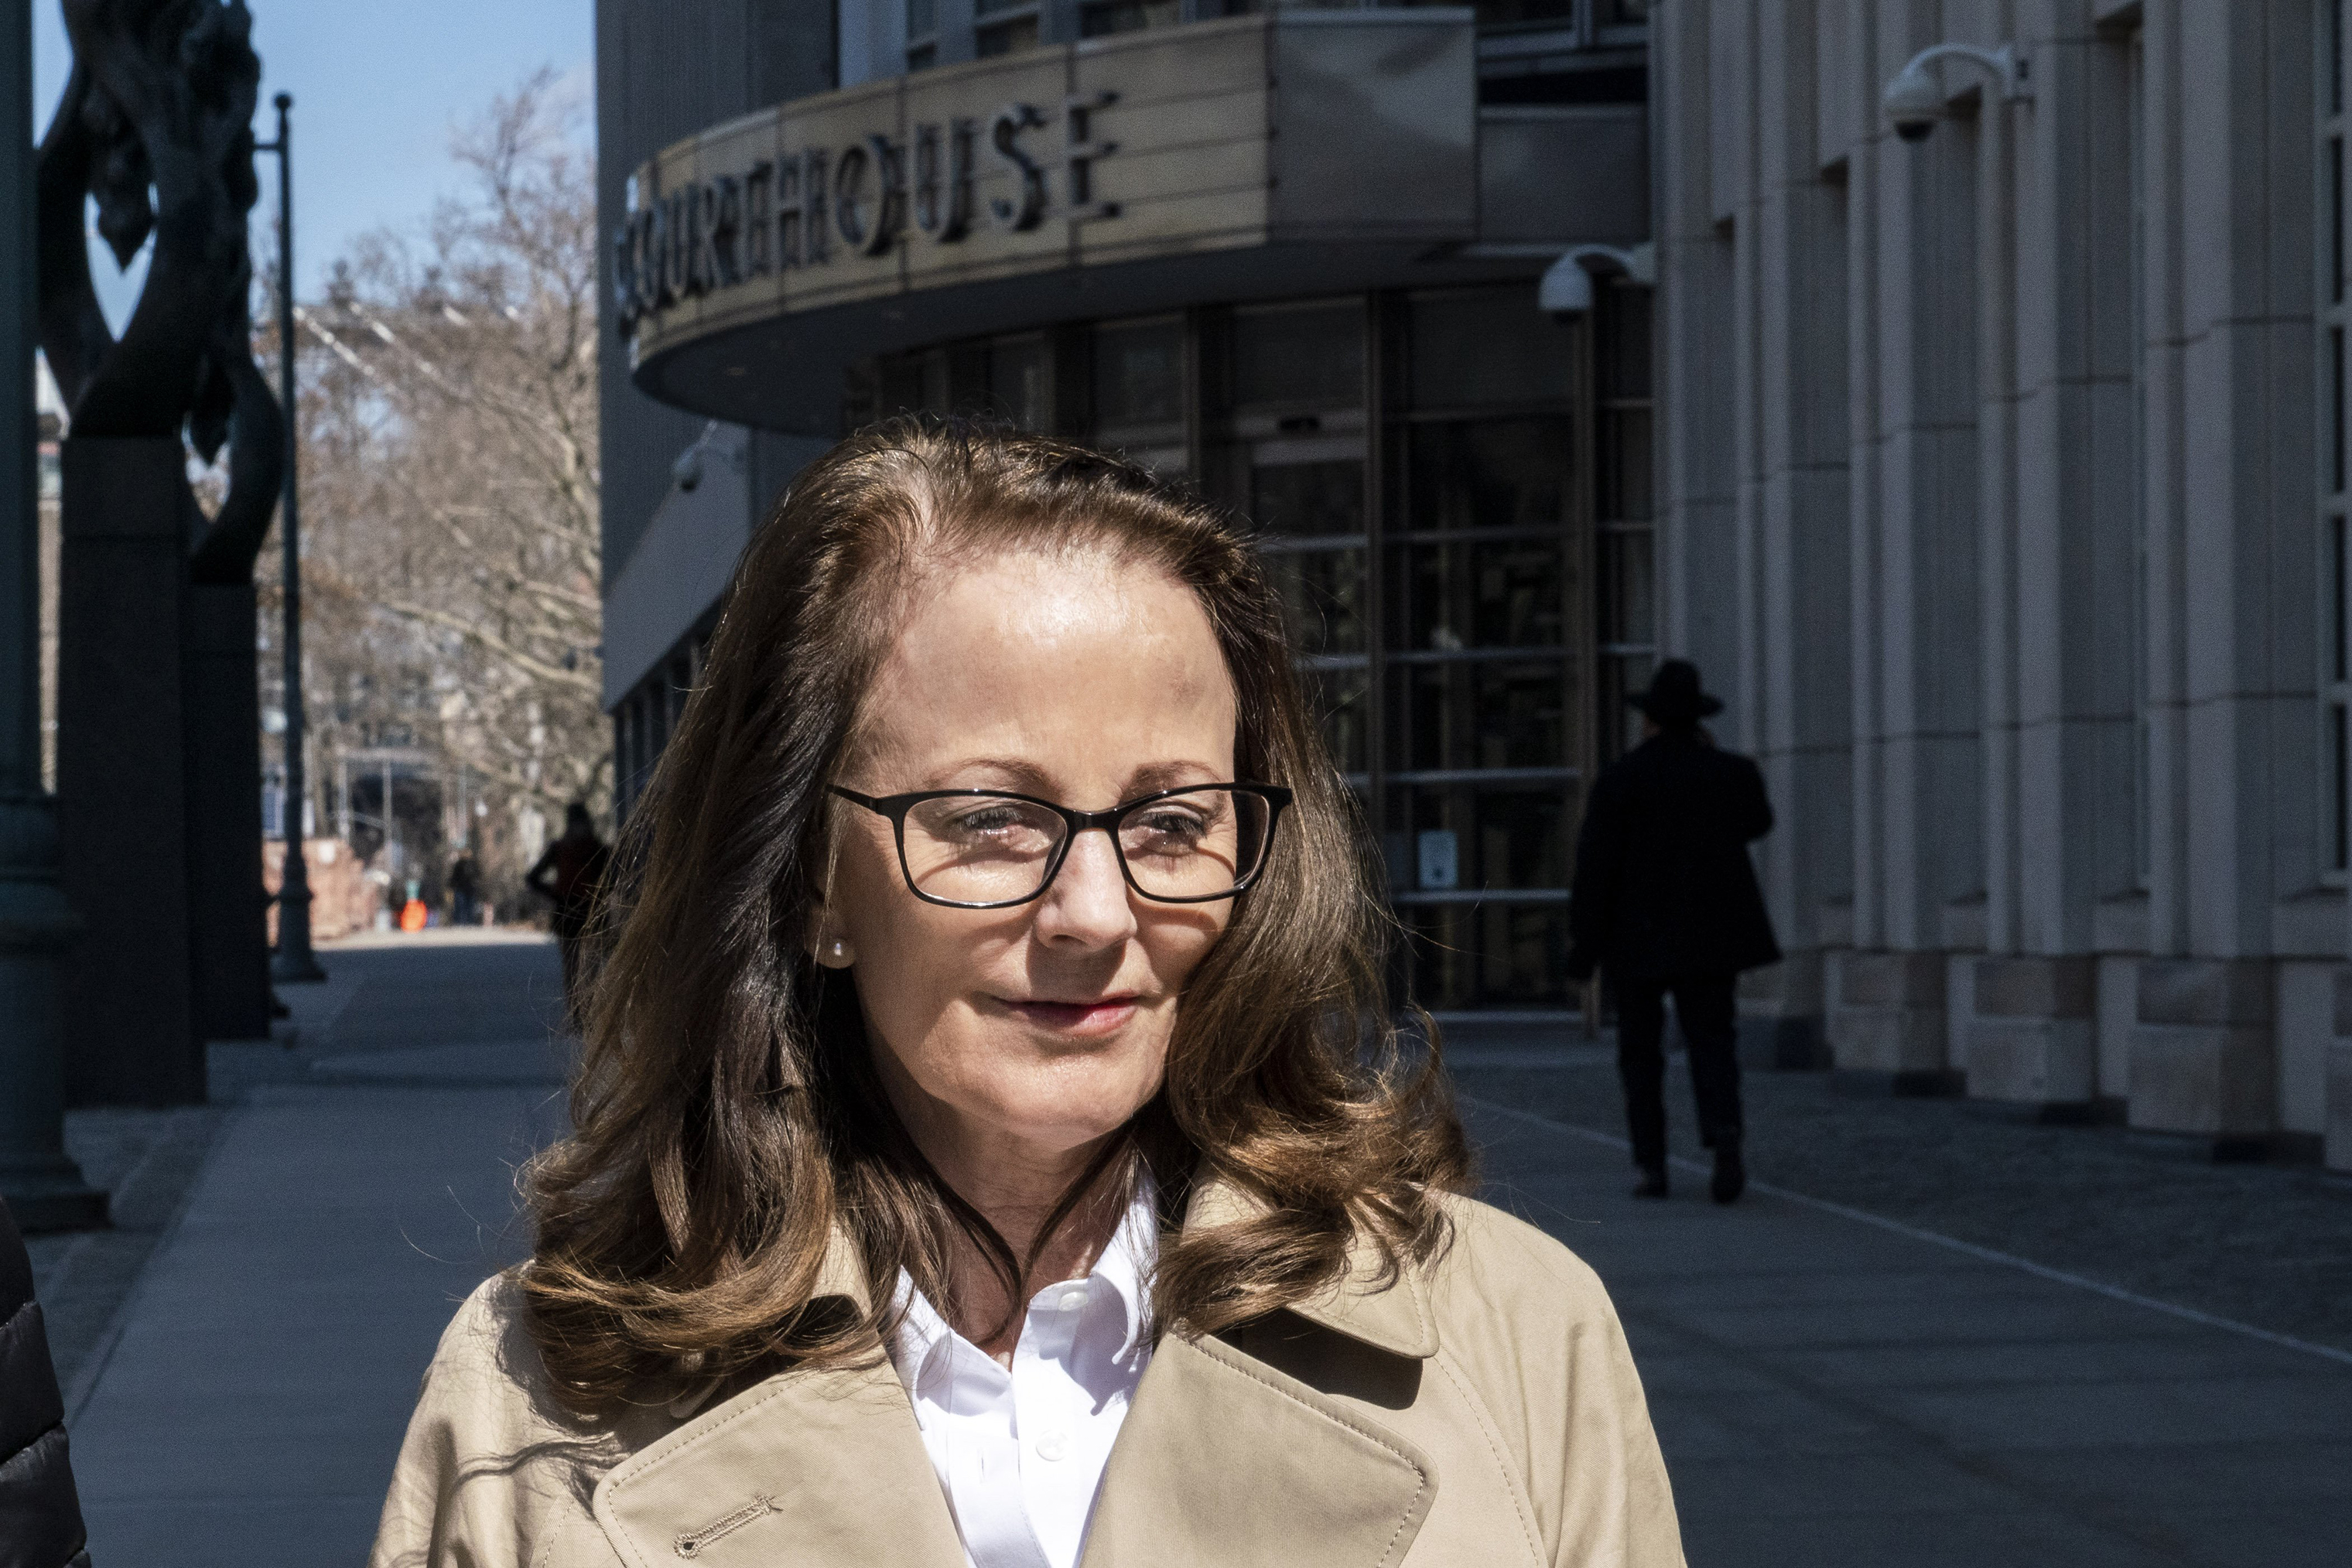 Kathy Russell leaves the Federal Courthouse in Brooklyn on March 18, 2019.